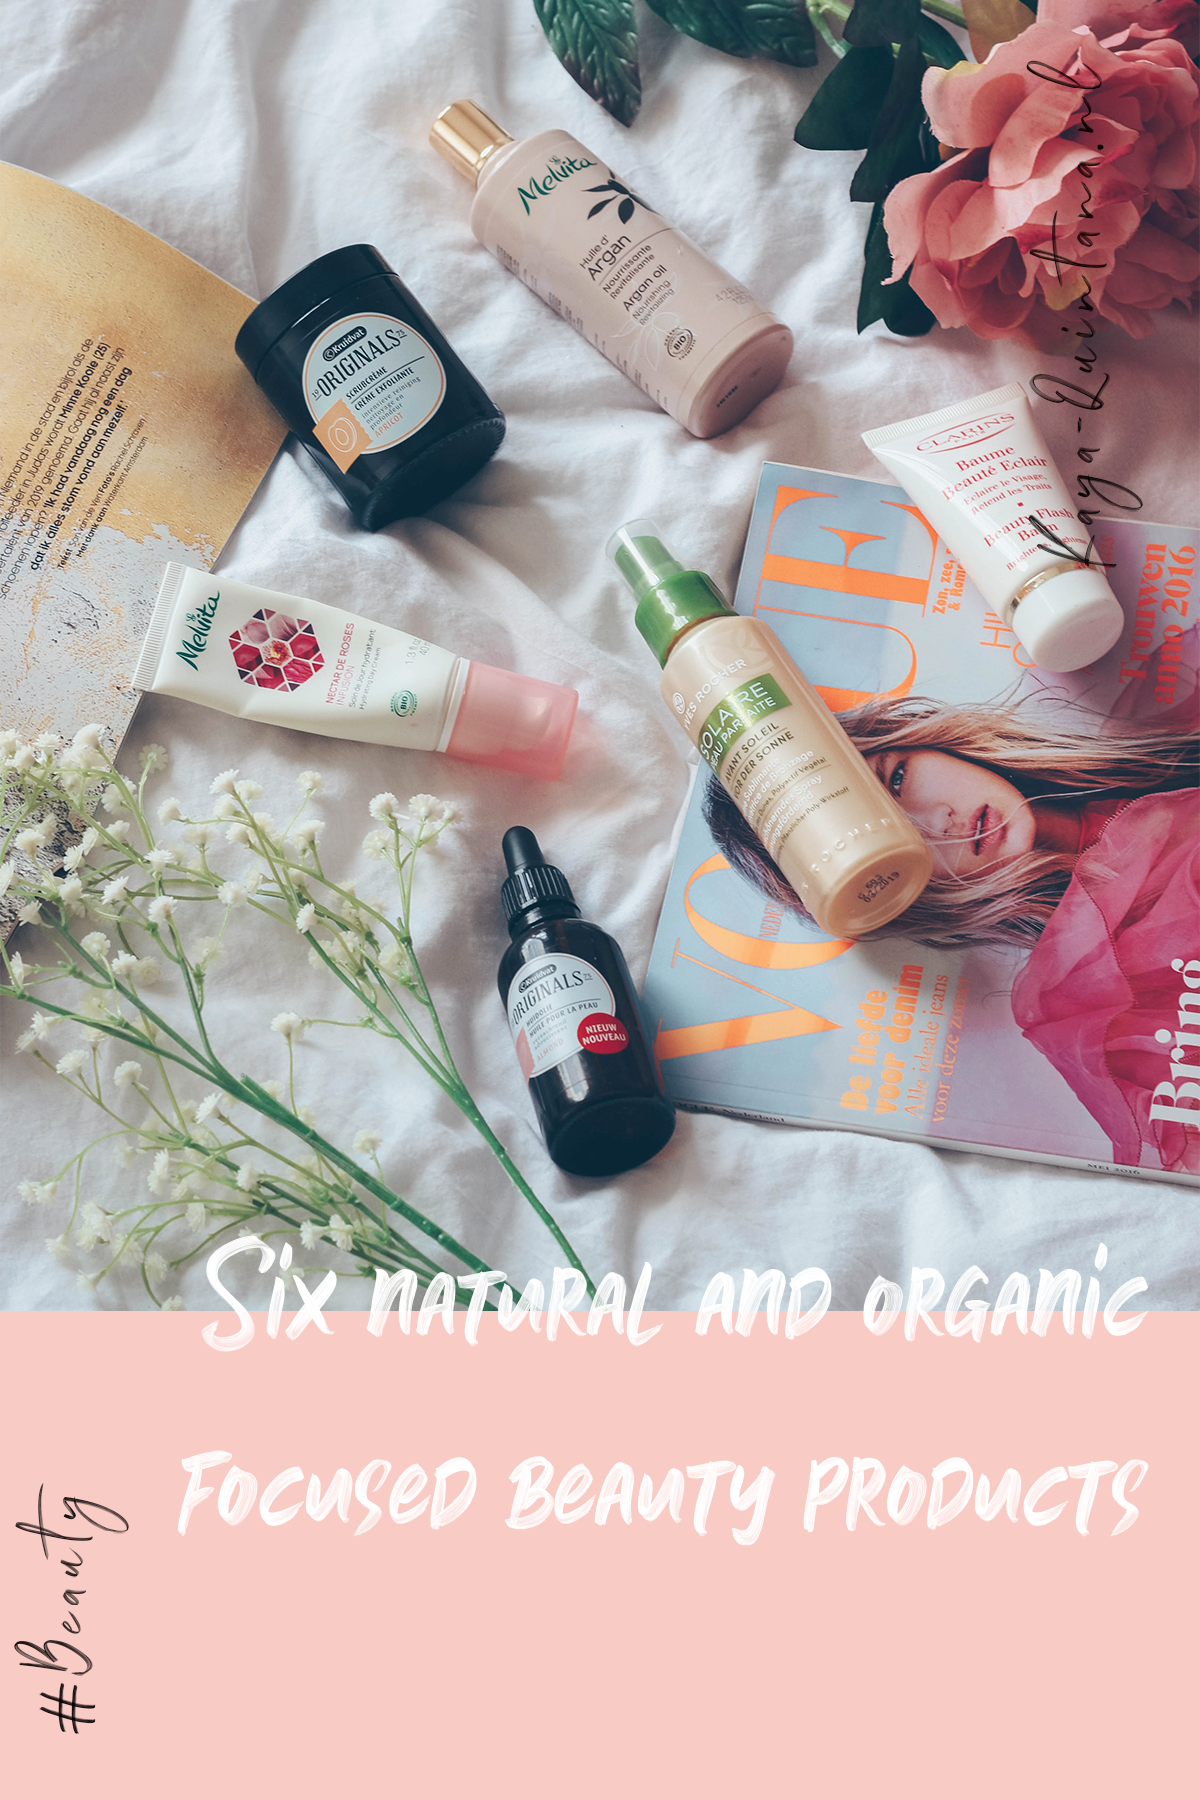 Six natural and organic focused beauty products